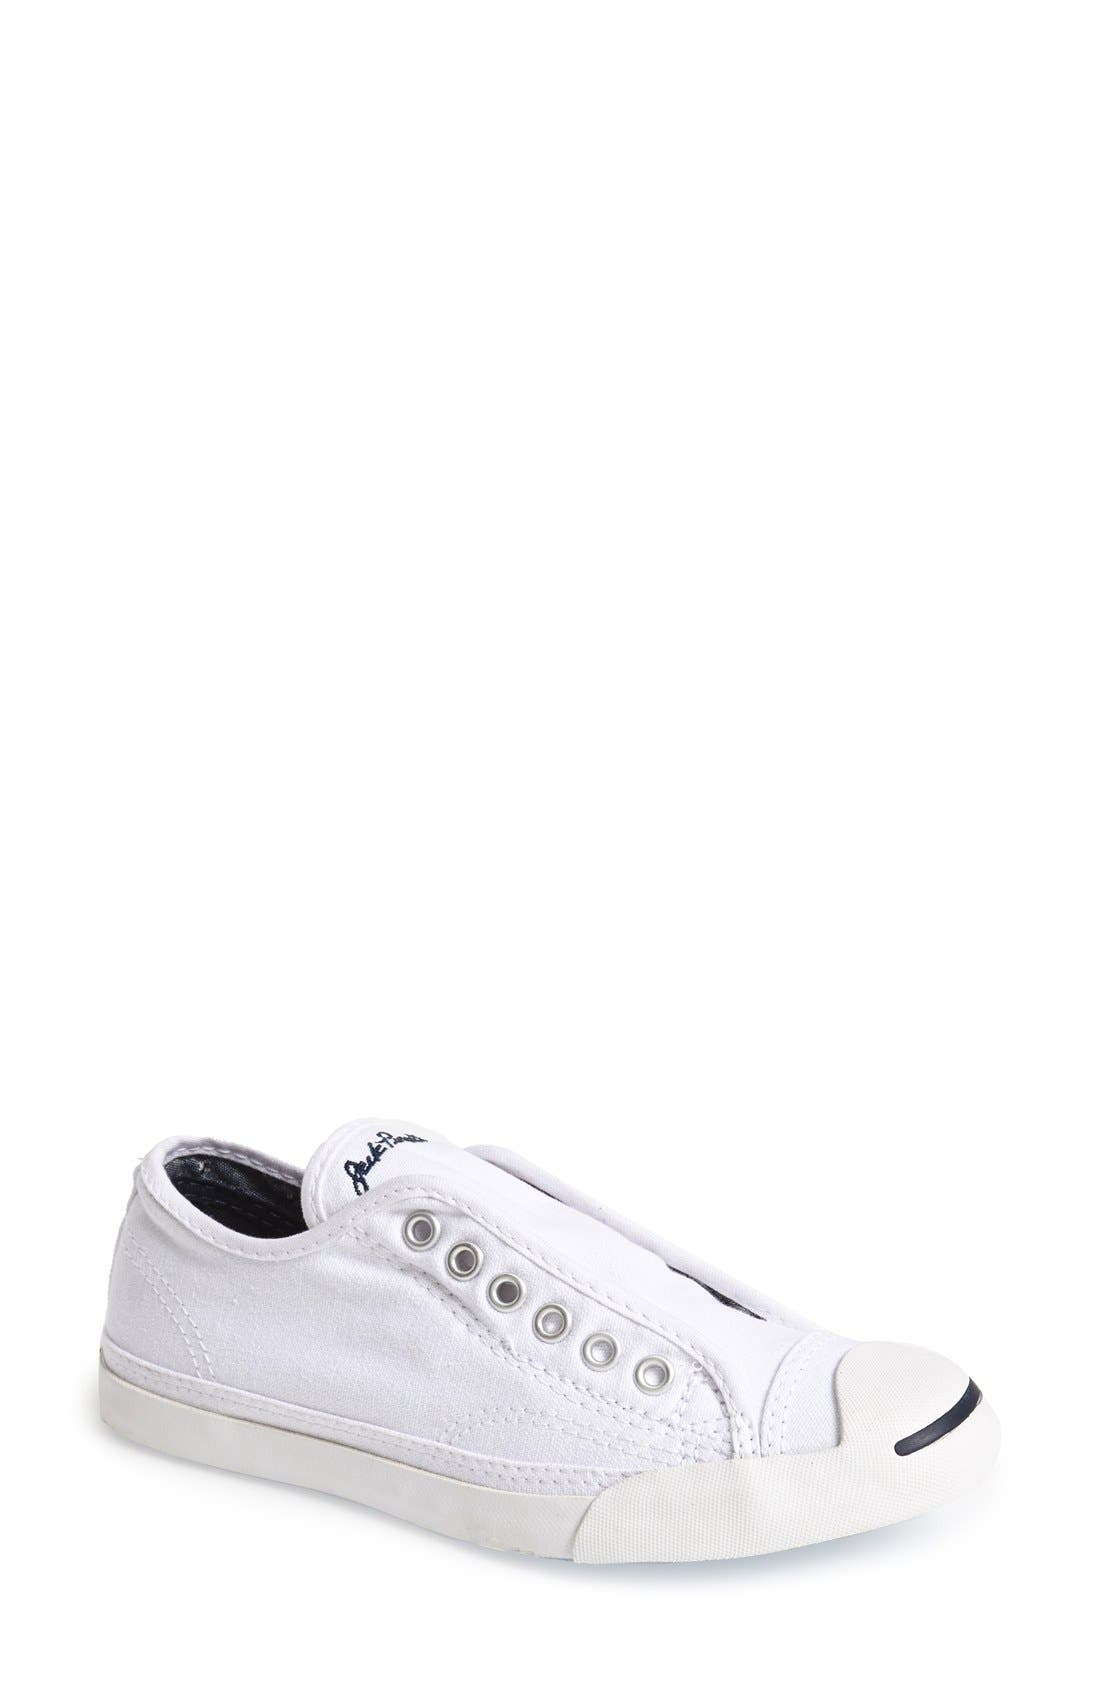 ,                             Jack Purcell Low Top Sneaker,                             Main thumbnail 67, color,                             100